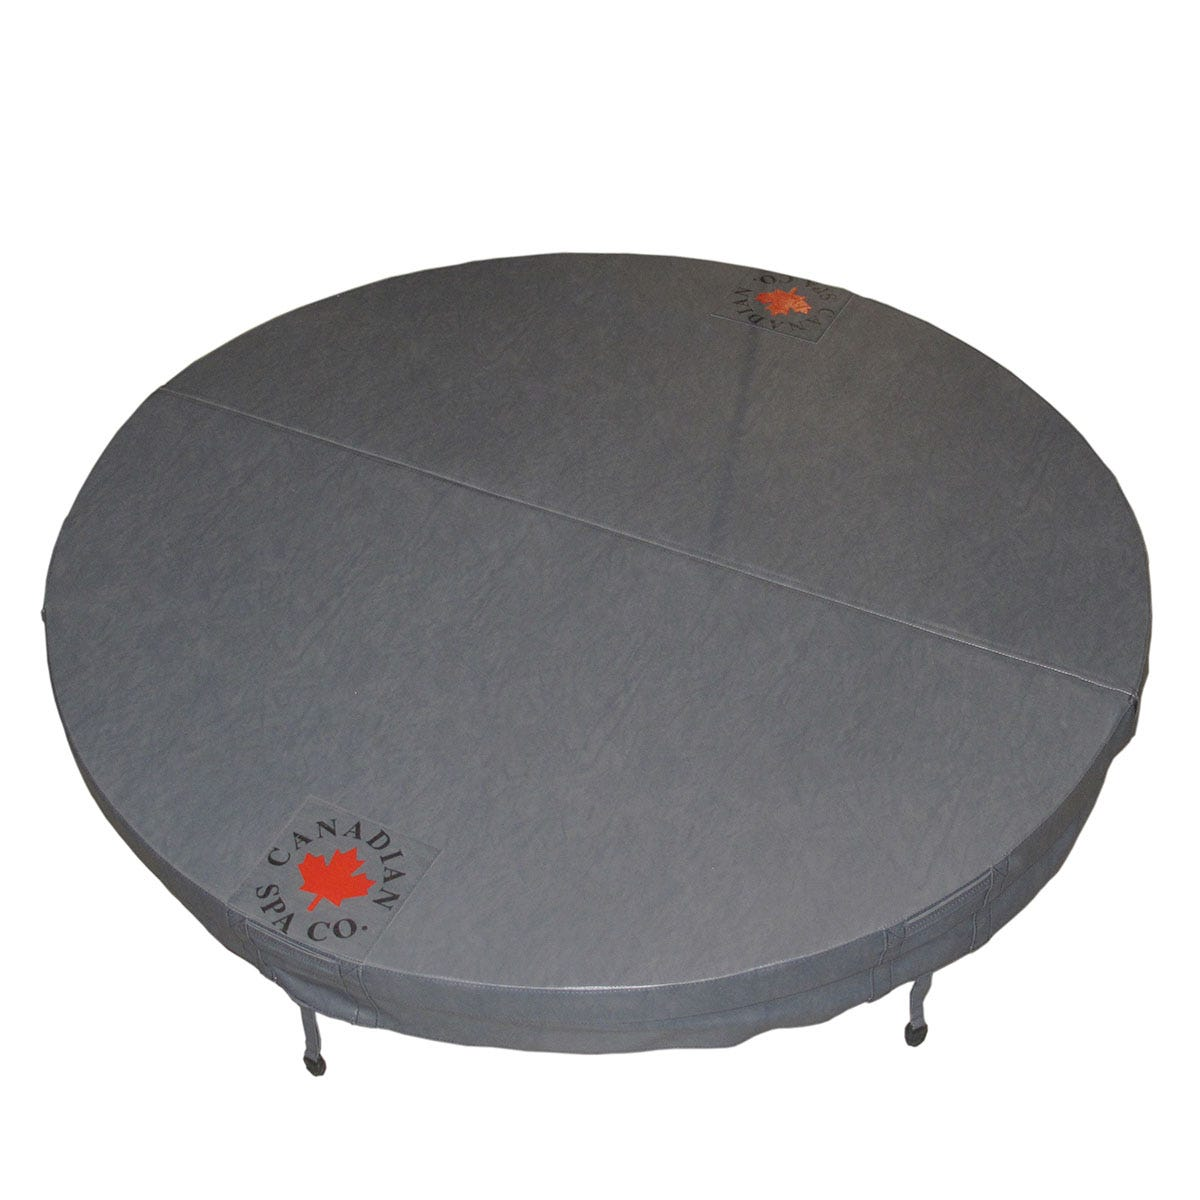 Canadian Spa Round Hot Tub Cover - Grey 203cm